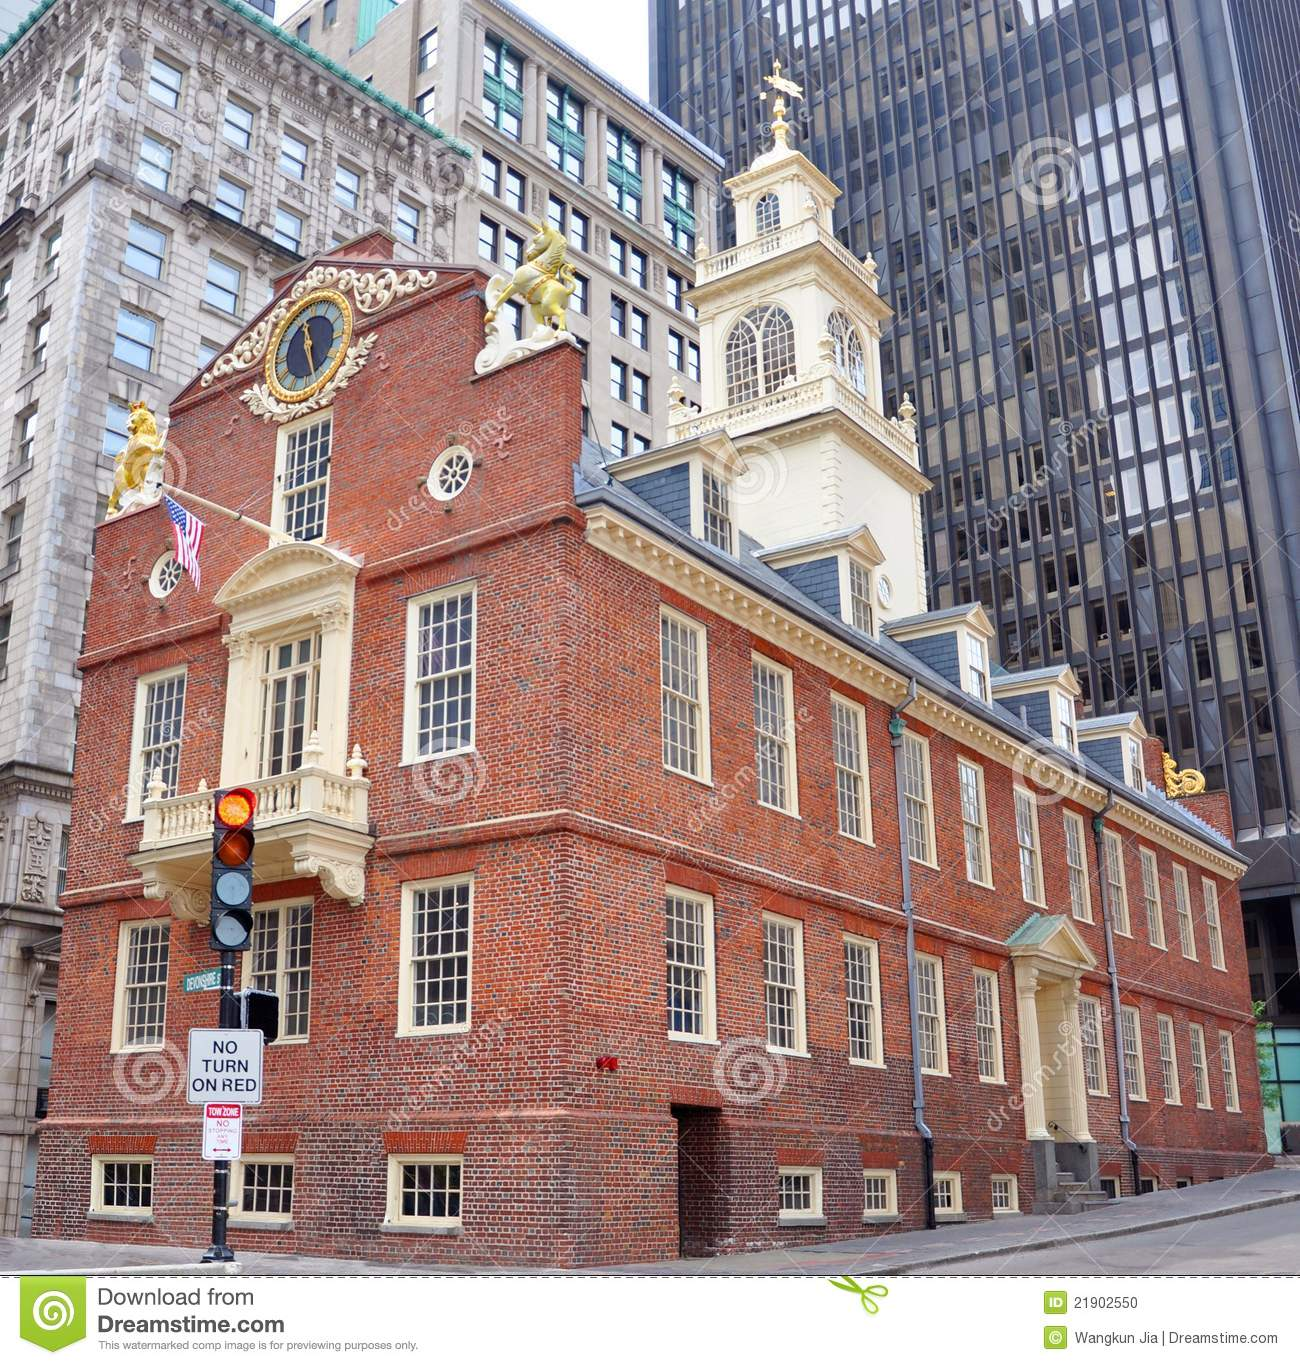 The Old State House - Boston